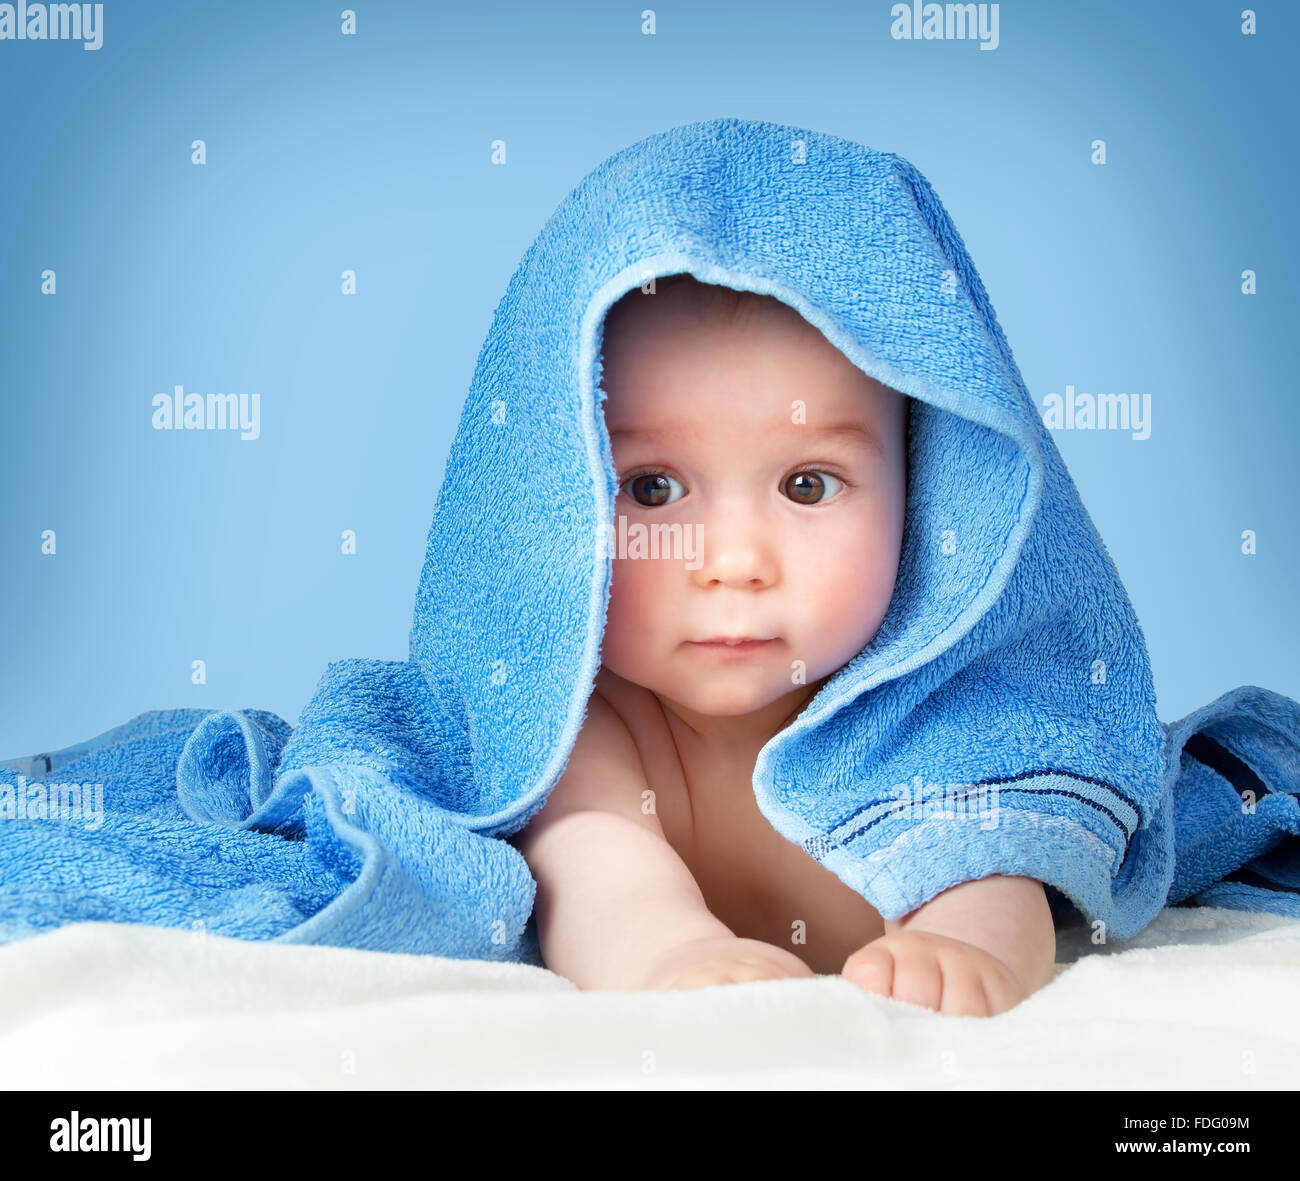 Cute baby in a towel Stock Photo